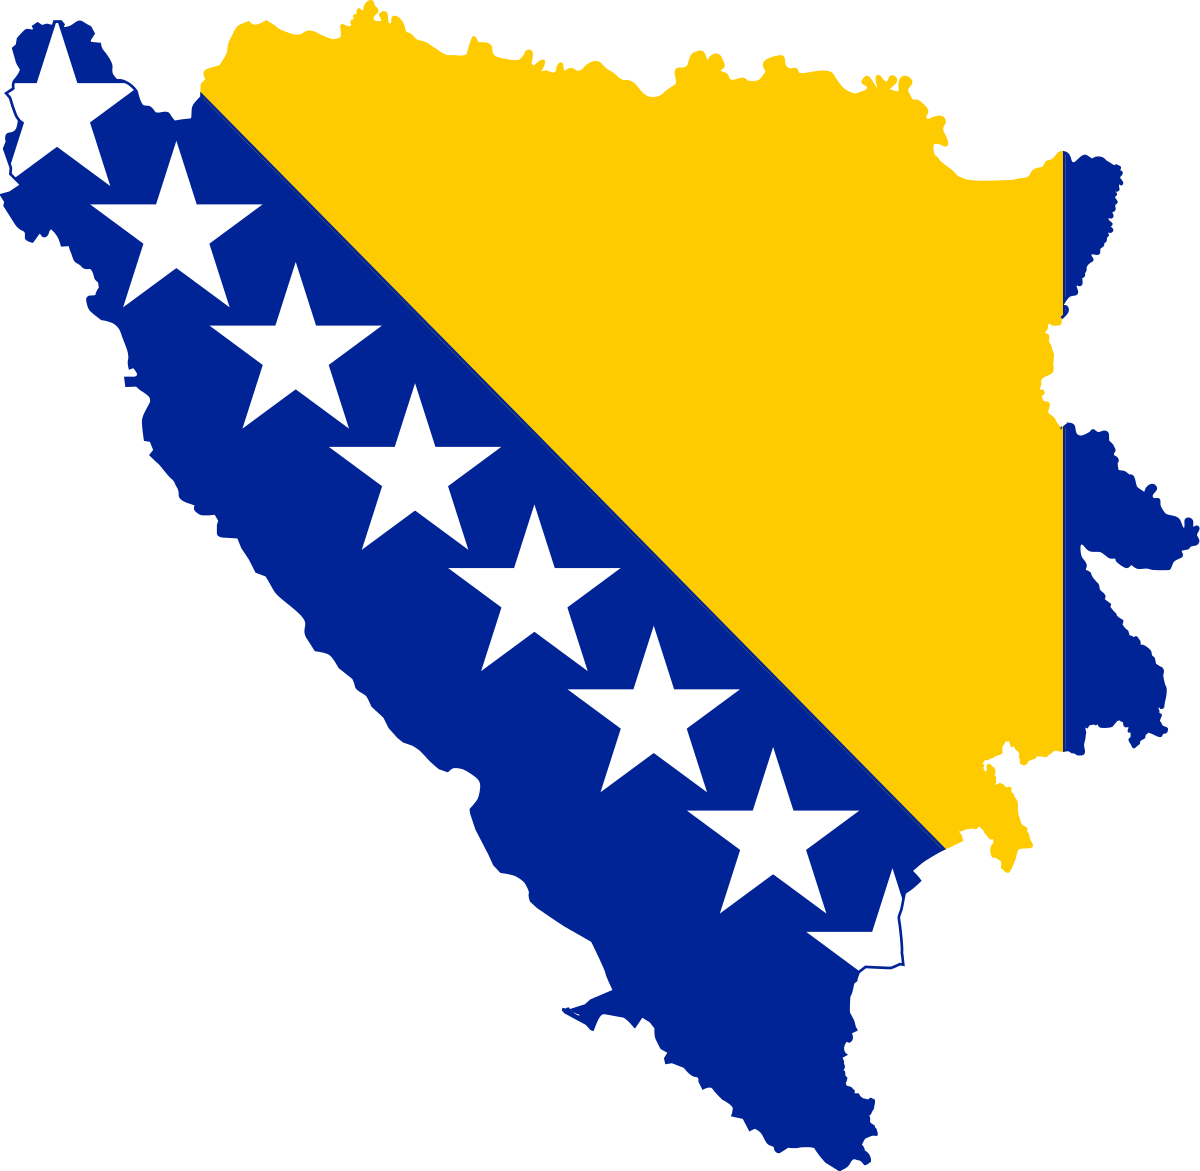 National Symbols Of Bosnia And Herzegovina